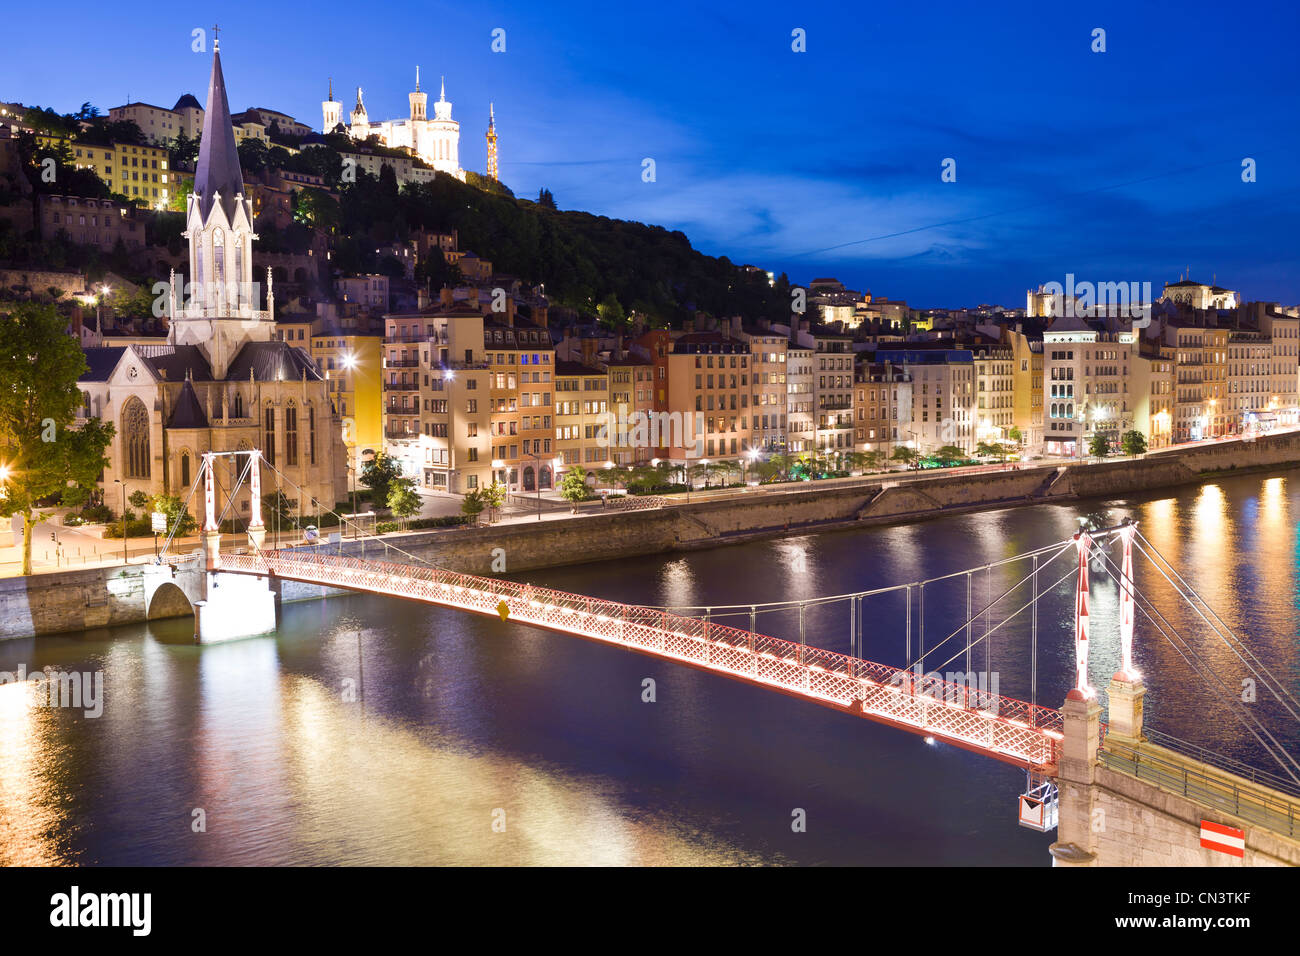 France, Rhone, Lyon, historical site listed as World Heritage by UNESCO, footbridge and St Georges Church over Saone - Stock Image